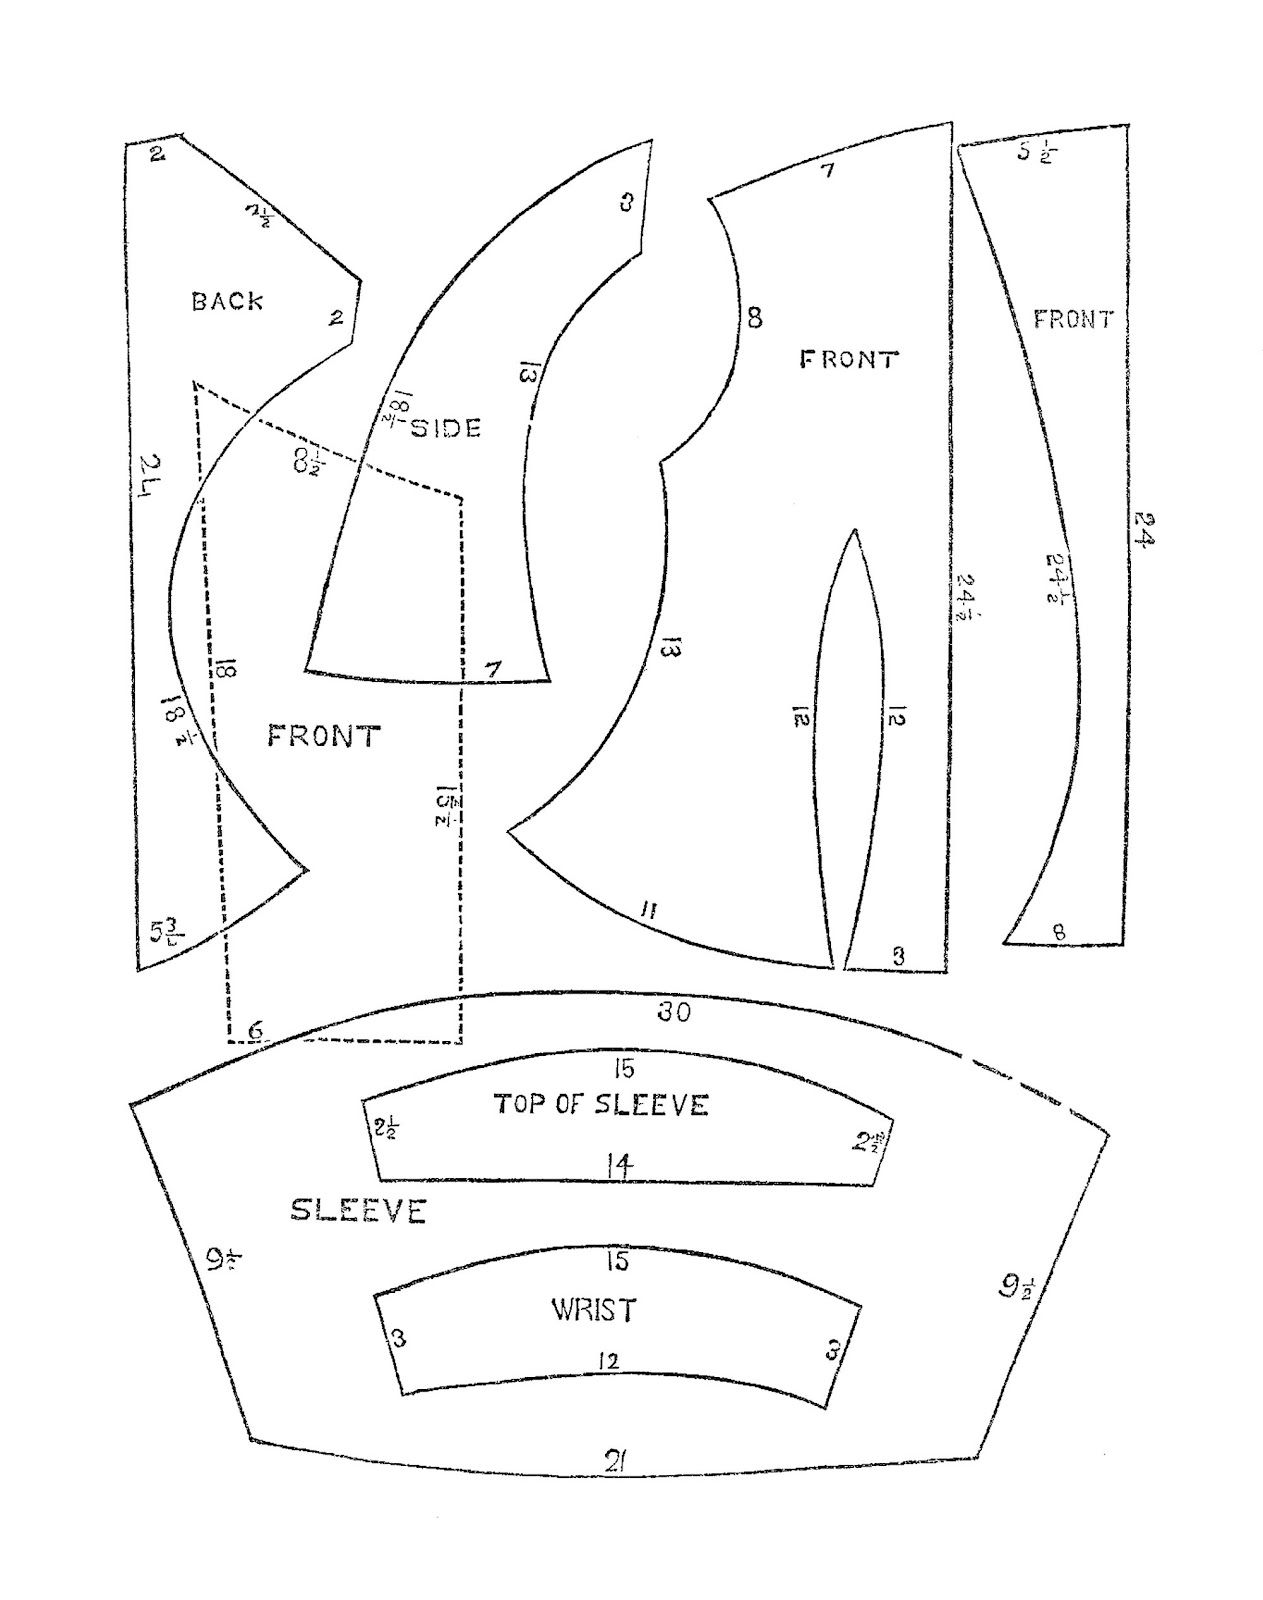 Antique Images: Free Antique Sewing Graphic: Victorian Era Men's and Women's Clothes Sewing Patterns